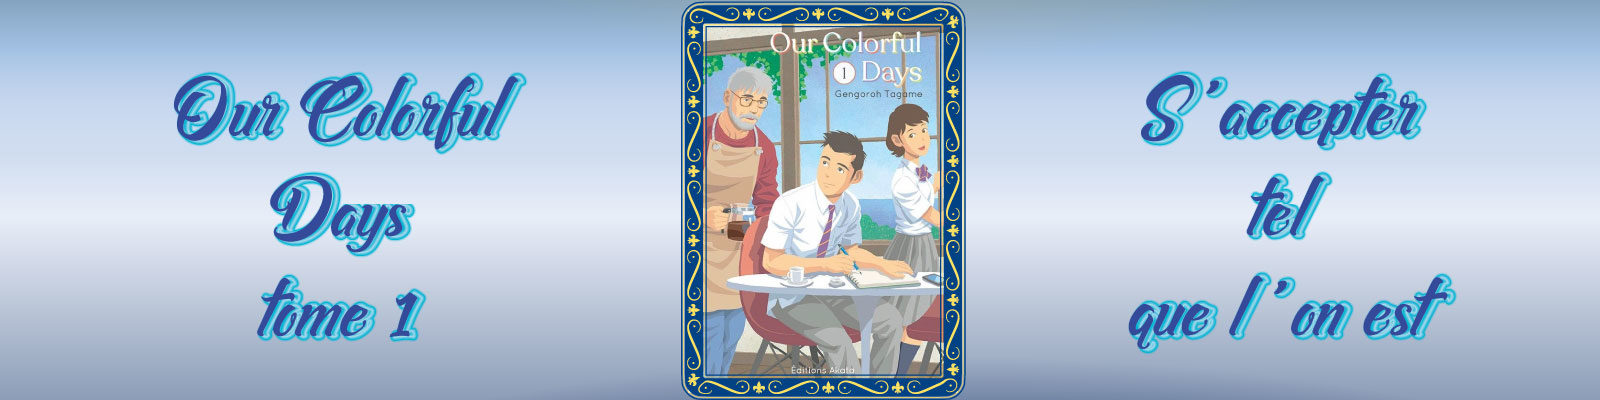 Our Colorful Days 1